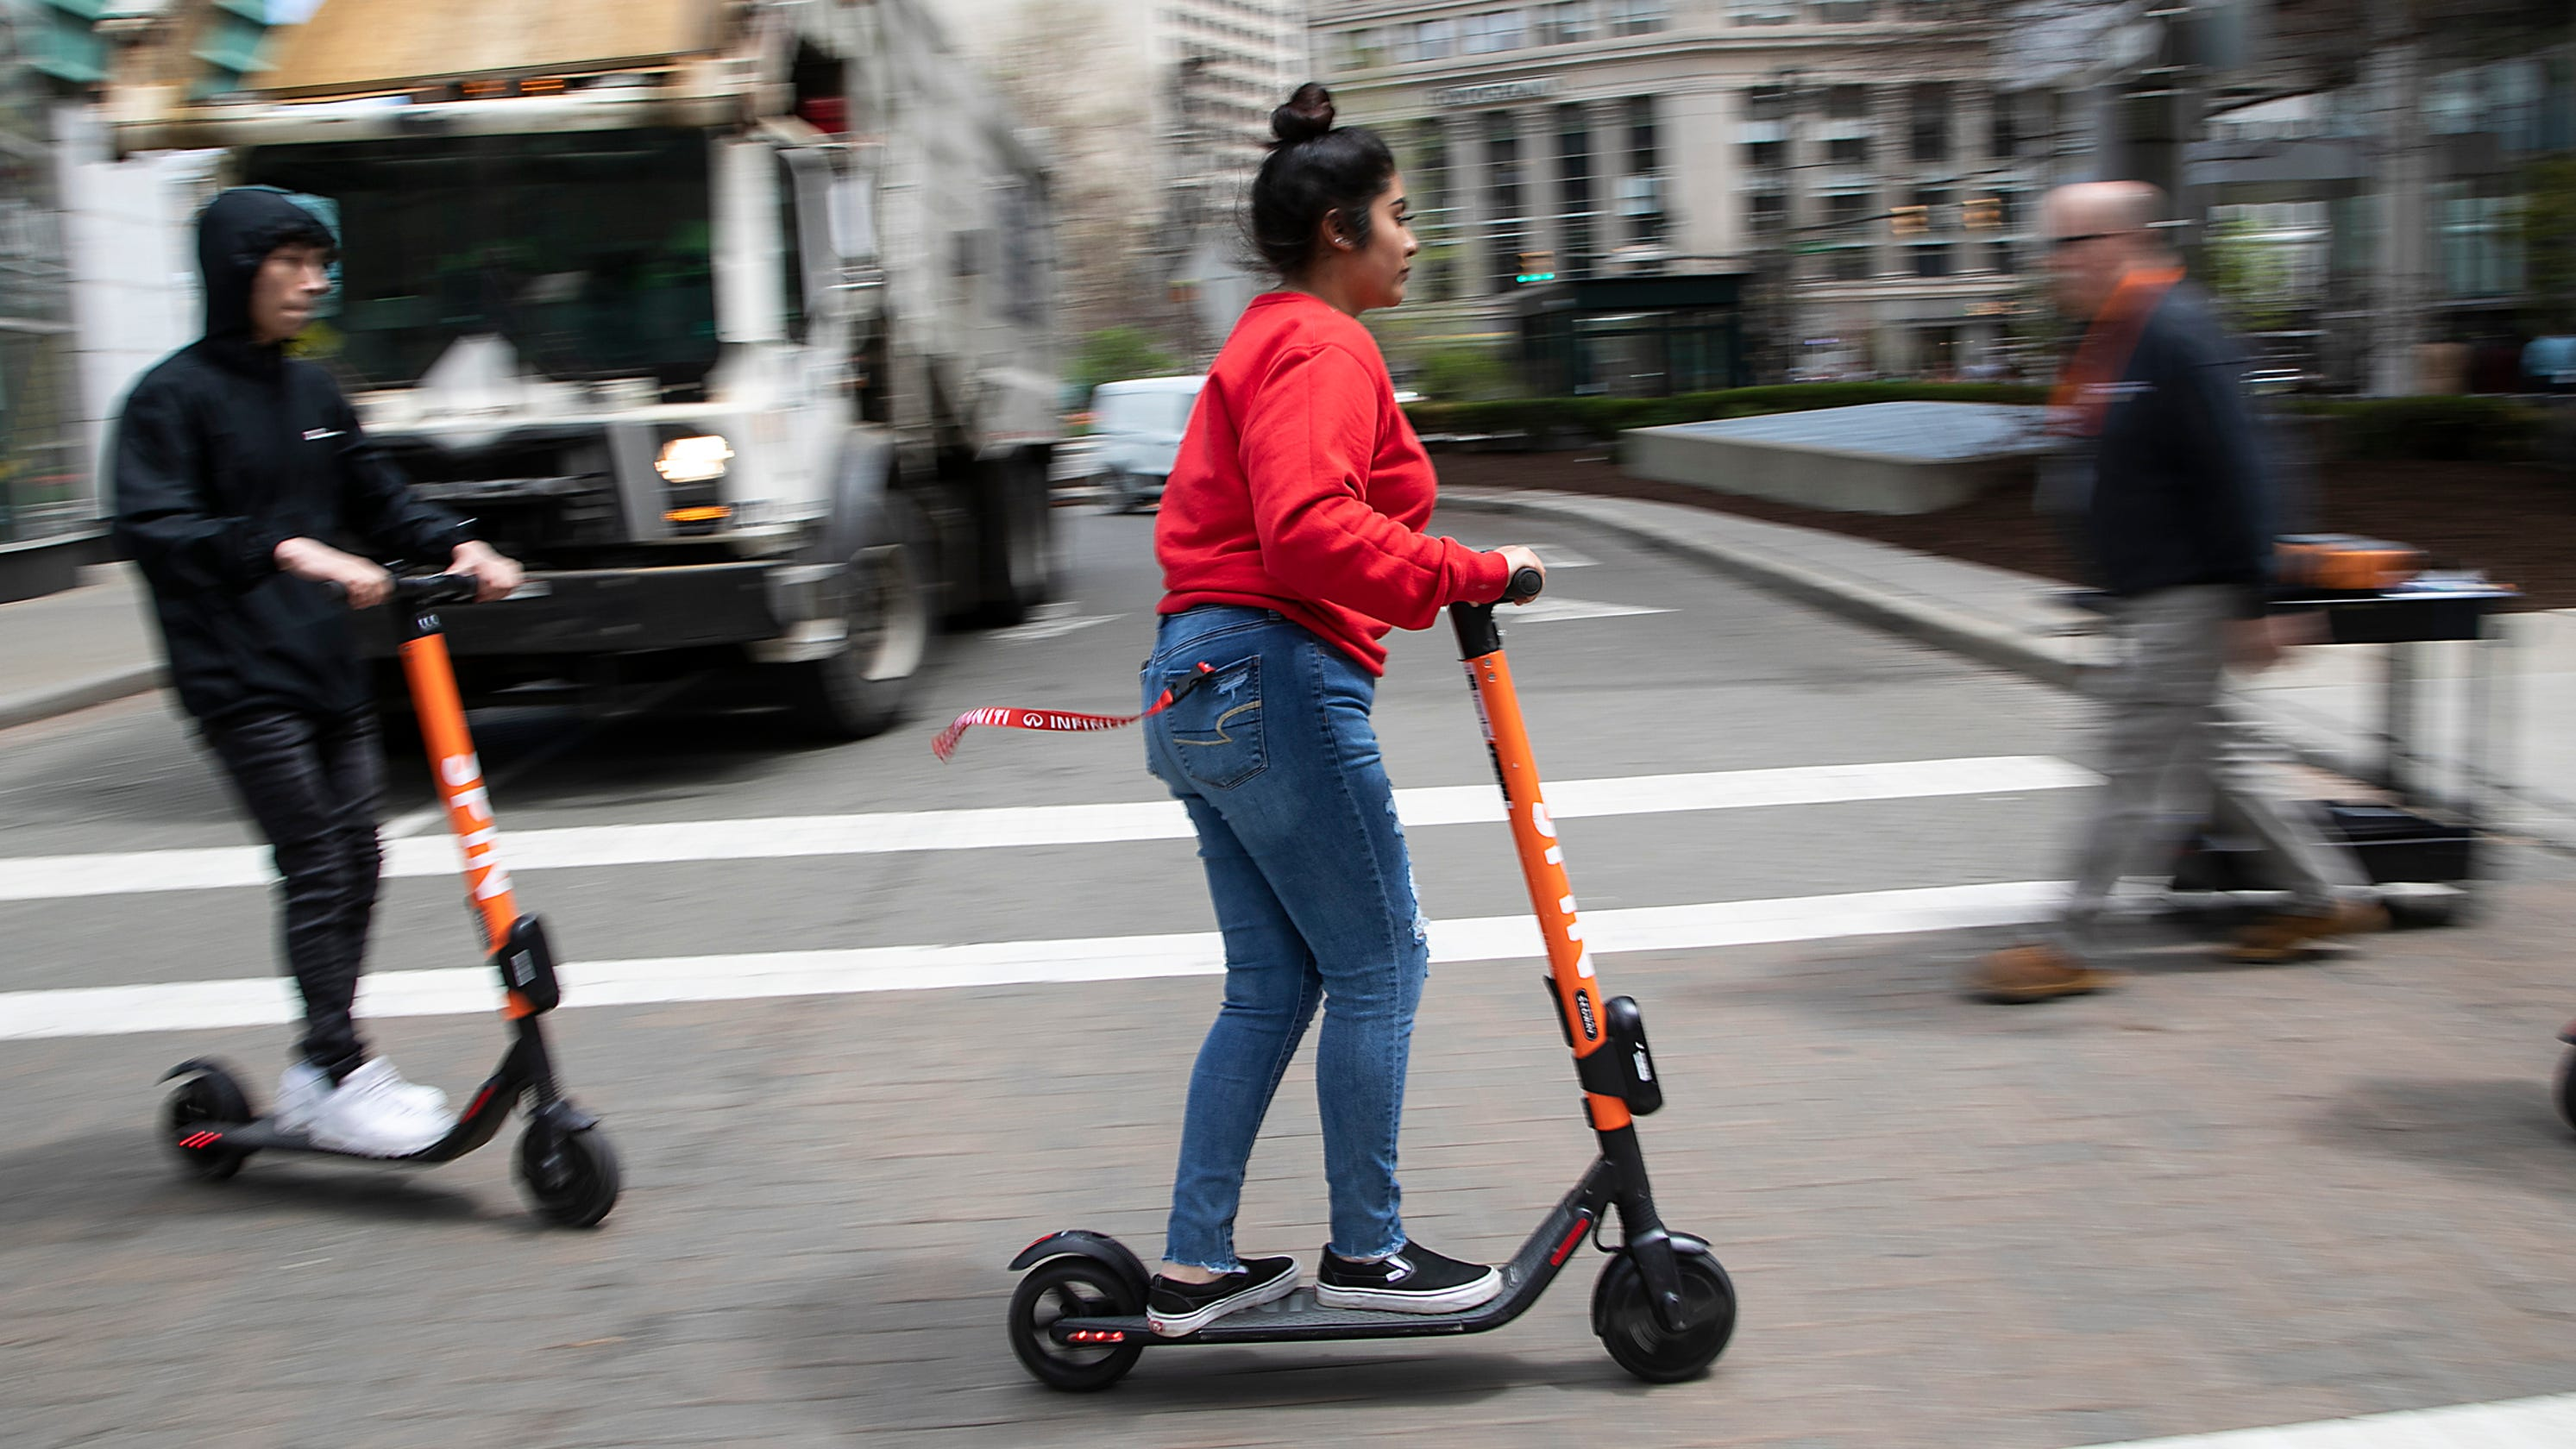 It's scooter season again in Detroit, but some prices are up